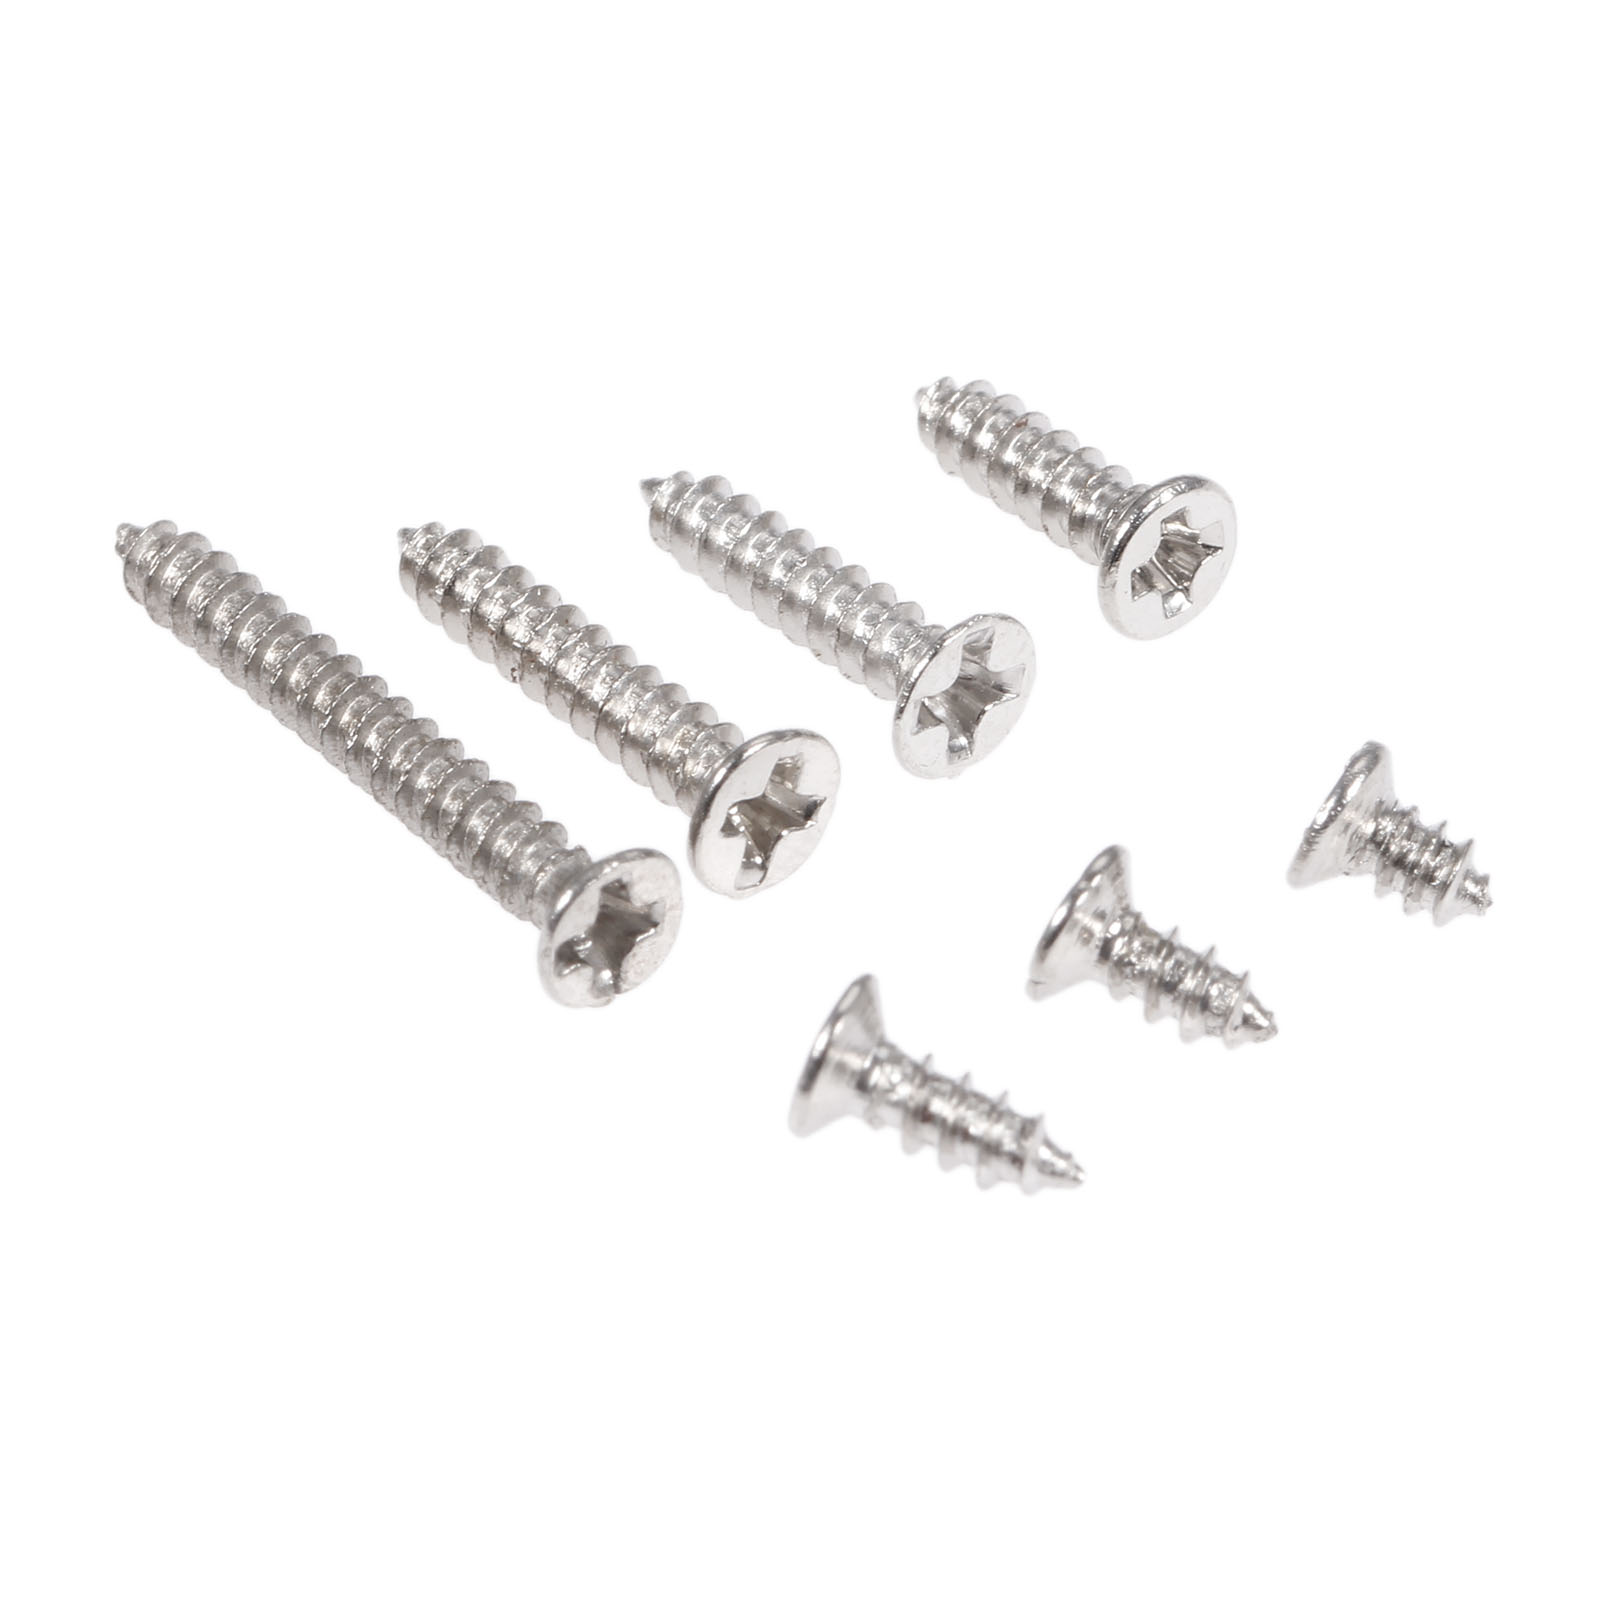 DRELD 100pcs/lot M2 Alloy Steel Phillips Screws Countersunk Flat Head Self Tapping Wood Screw Bolts M2 x4/5/6mm/8mm/12mm/16mm болт 100pcs lot din7985 m2 5 8 2 100pcs lot din7985 m2 5 8mm